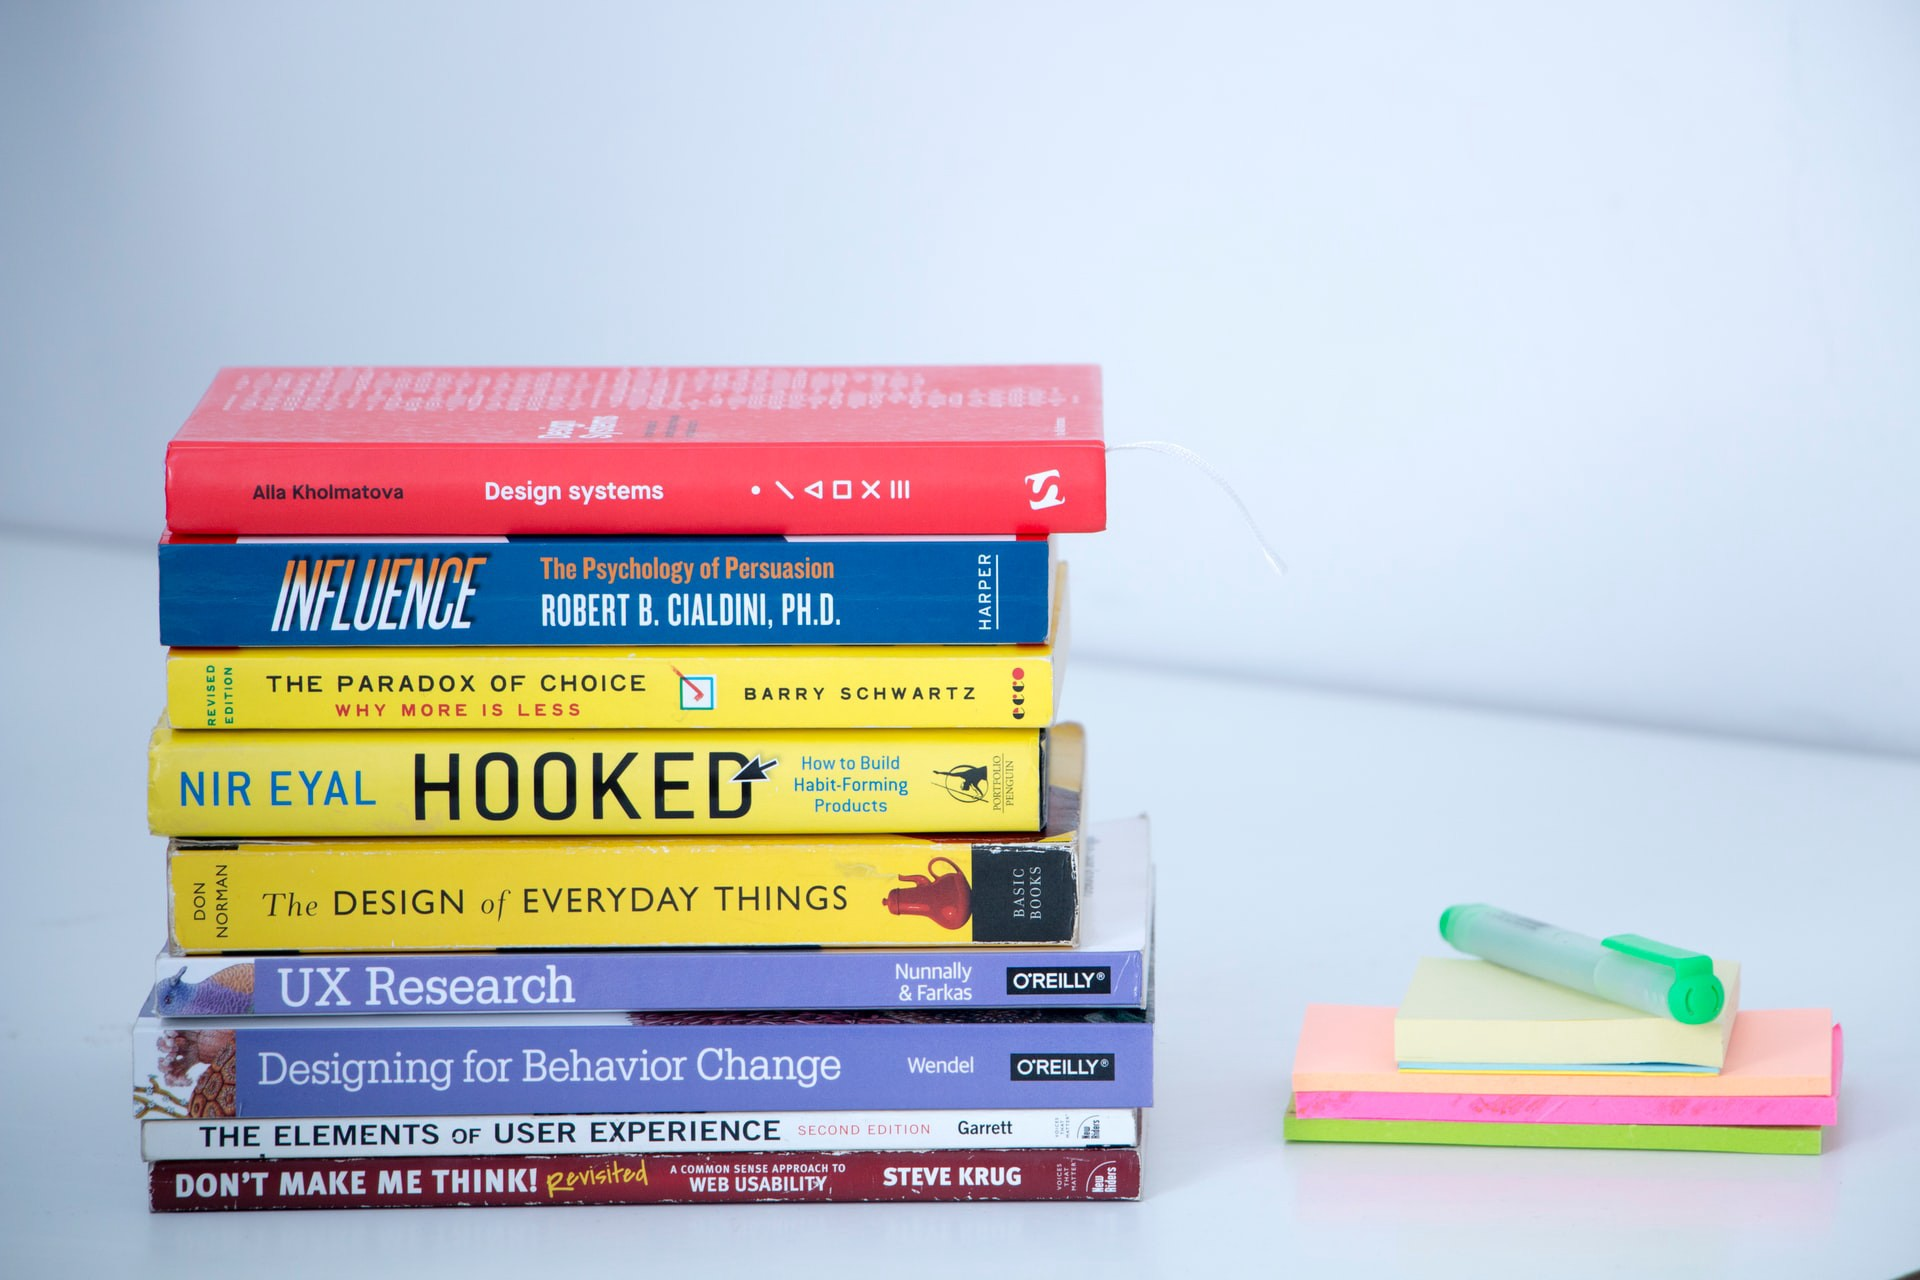 A pile of books about design, usability, and user experience, next to a pile of post-it notes and a pen.